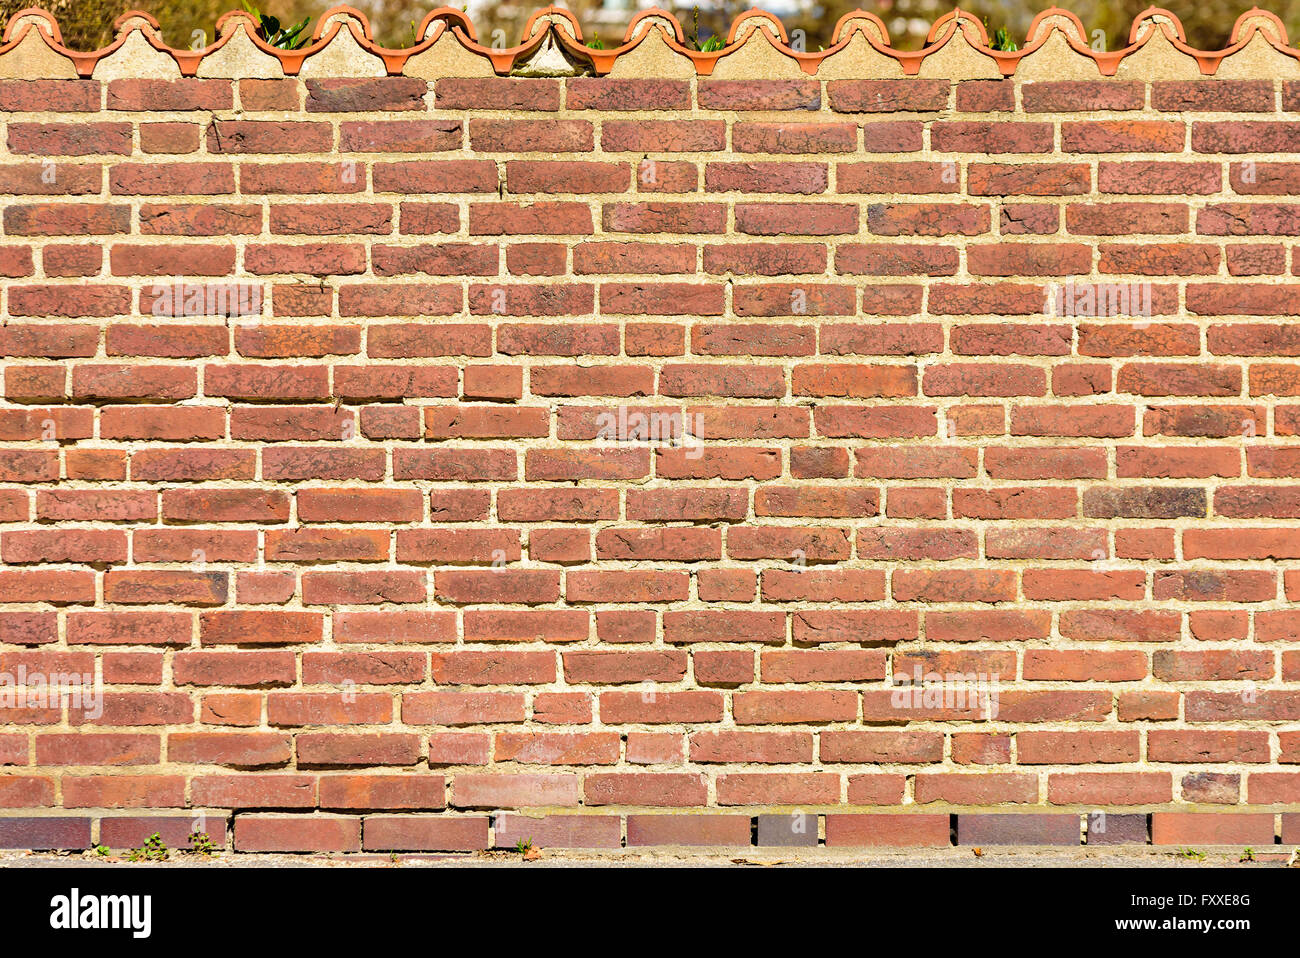 Red Brick Wall With A Row Of Roof Tiles On Top Stock Photo